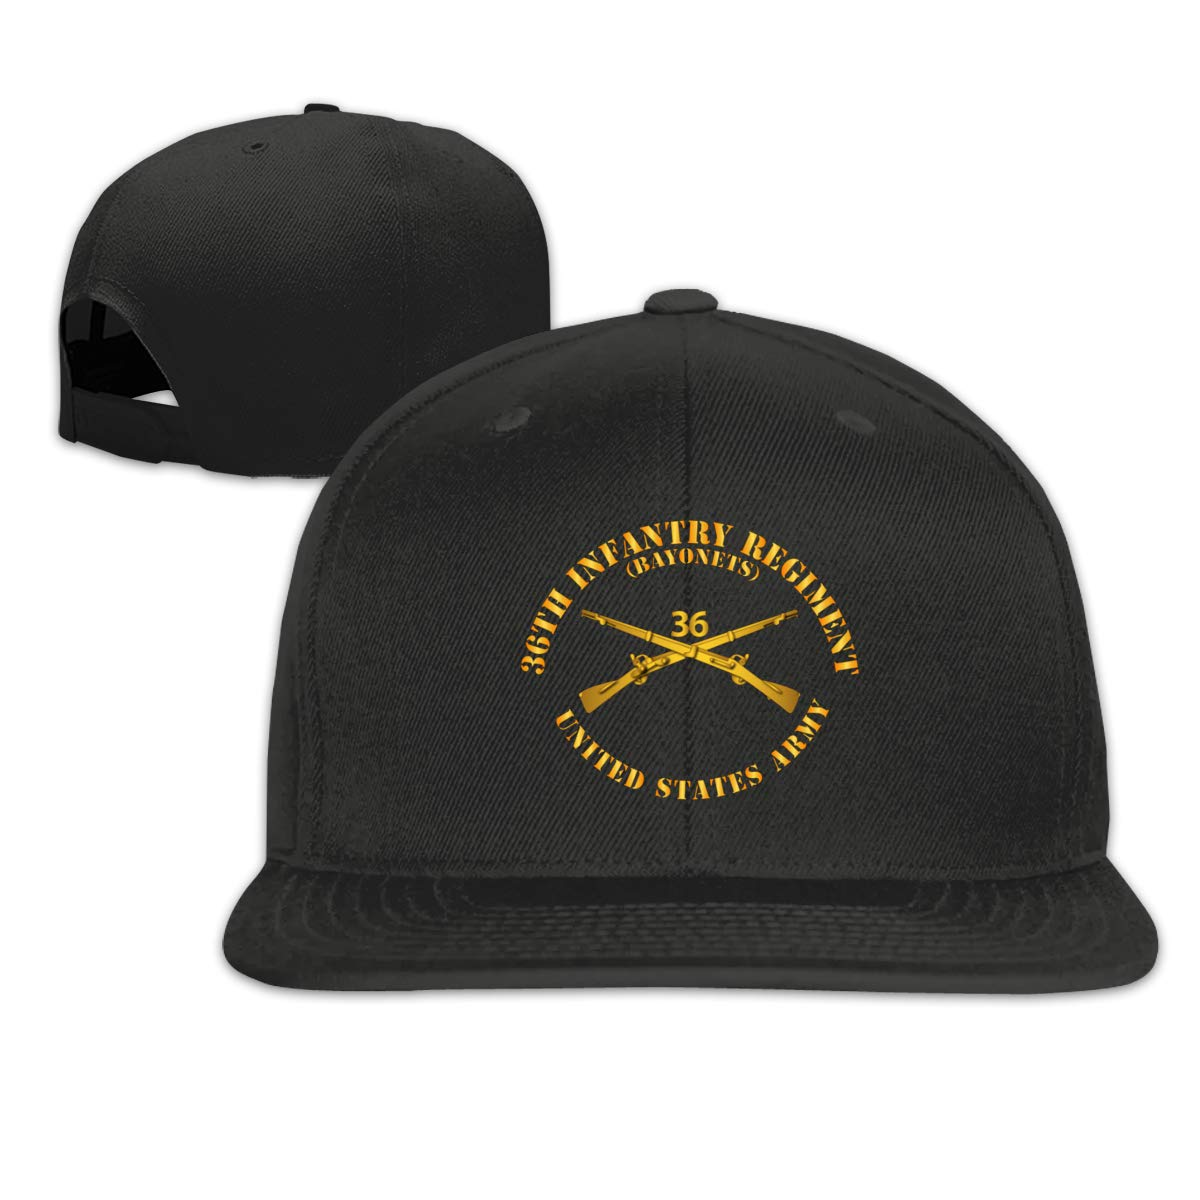 36th Infantry REGT Bayonet Infantry Br Unisex Adult Hats Classic Baseball Caps Sports Hat Peaked Cap